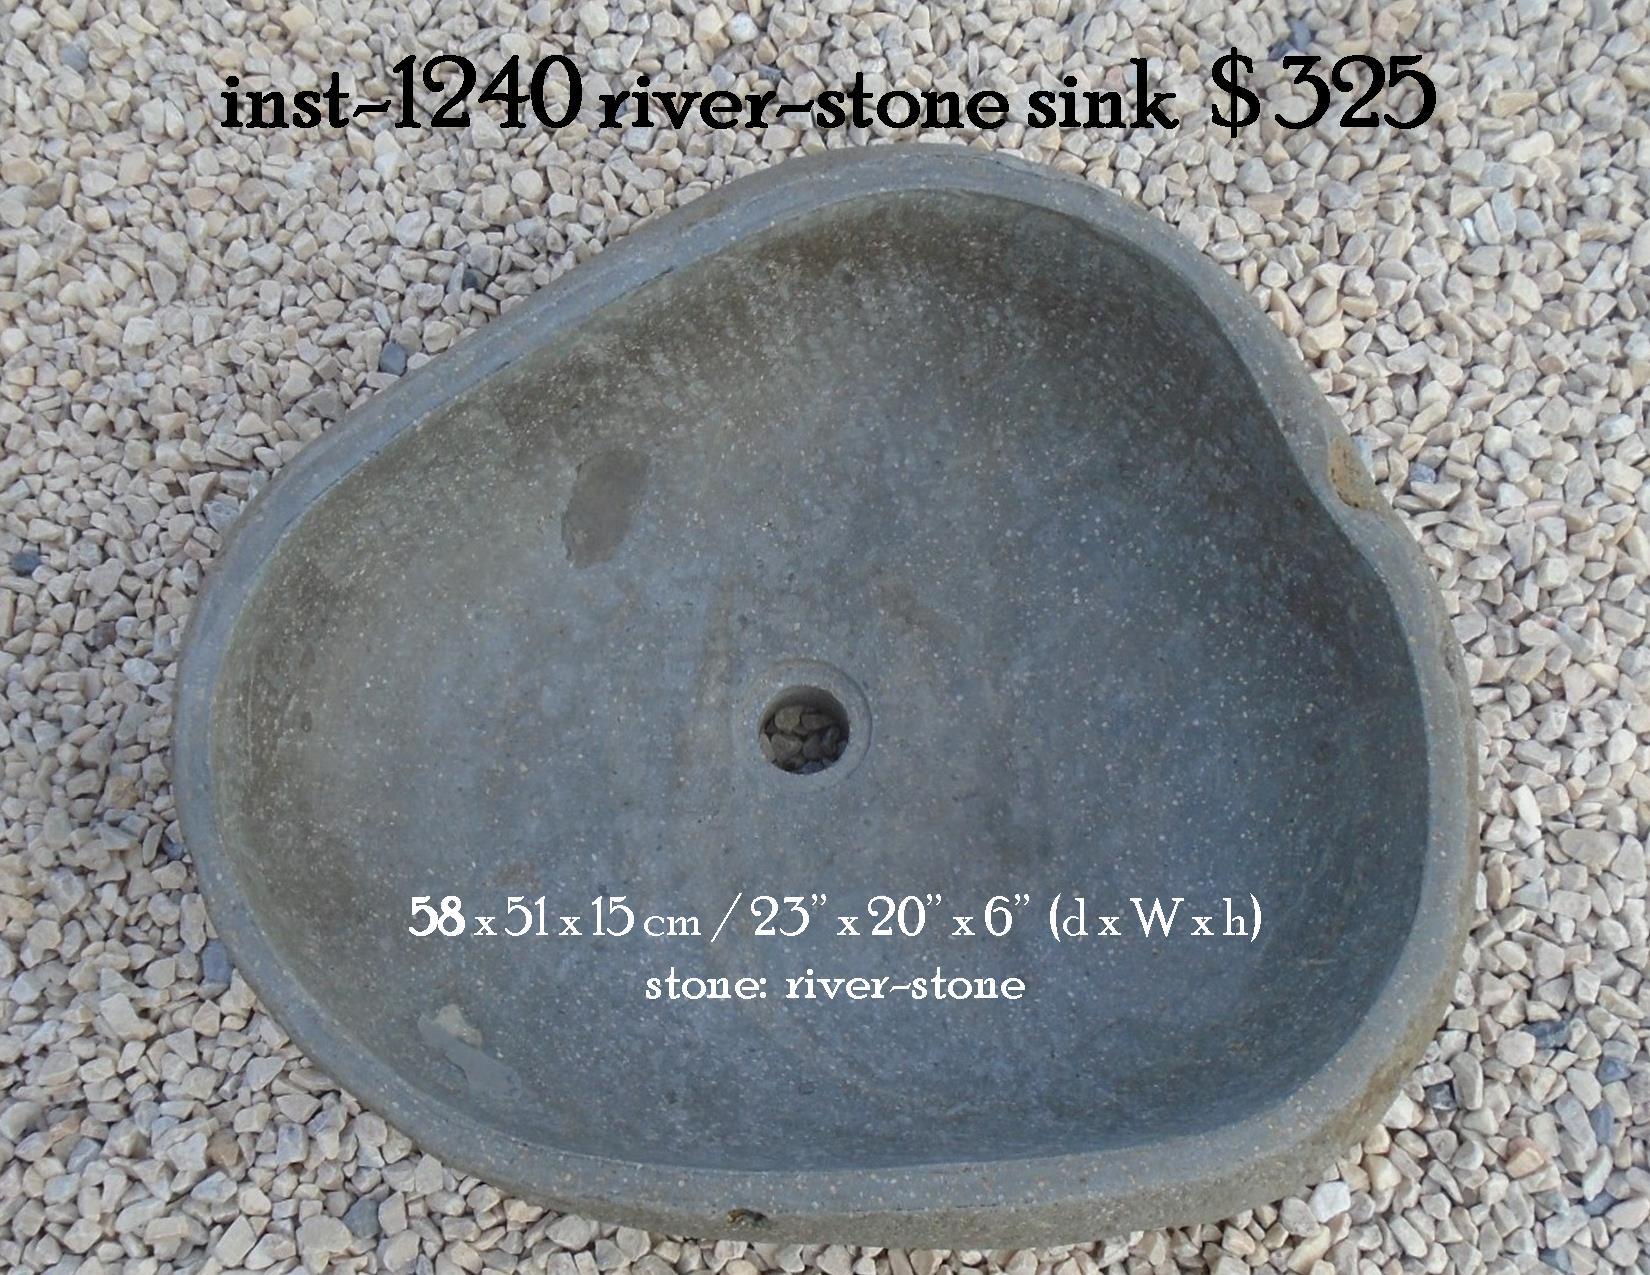 inst-1240 river-stone sink